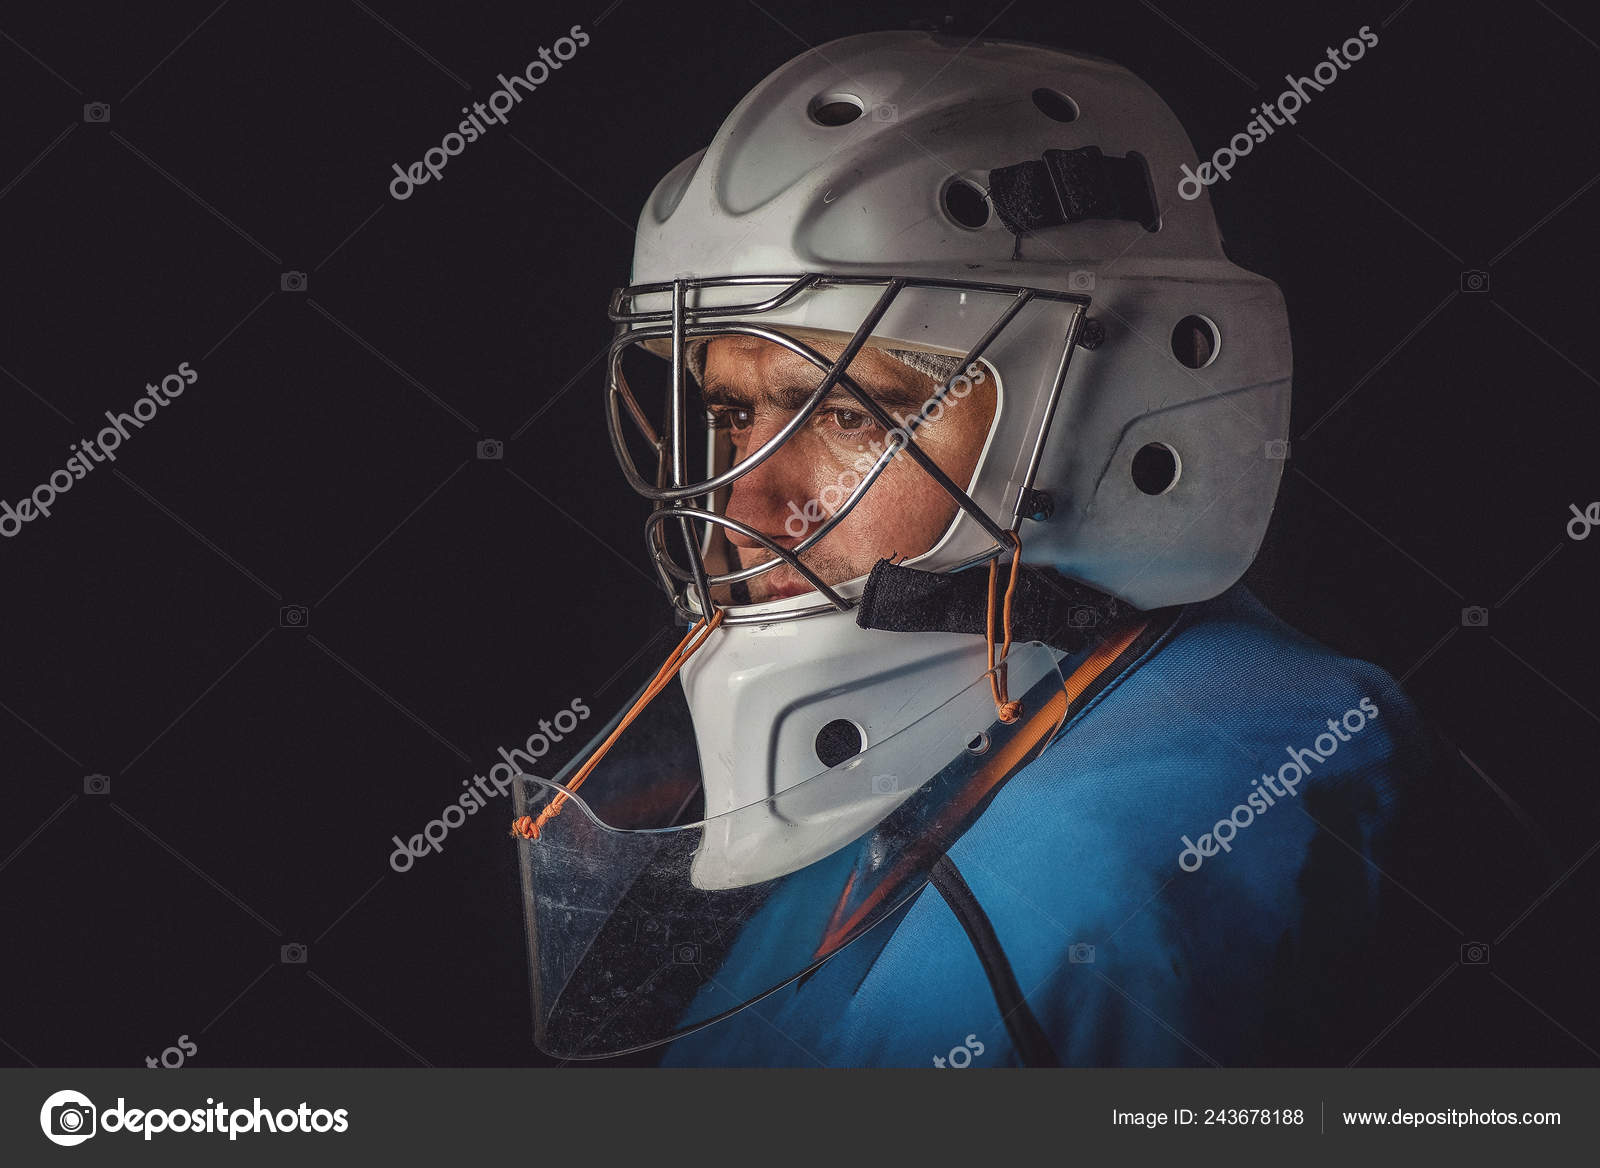 Hockey Goalie Mask Stock Photo C Alenalitvin 243678188